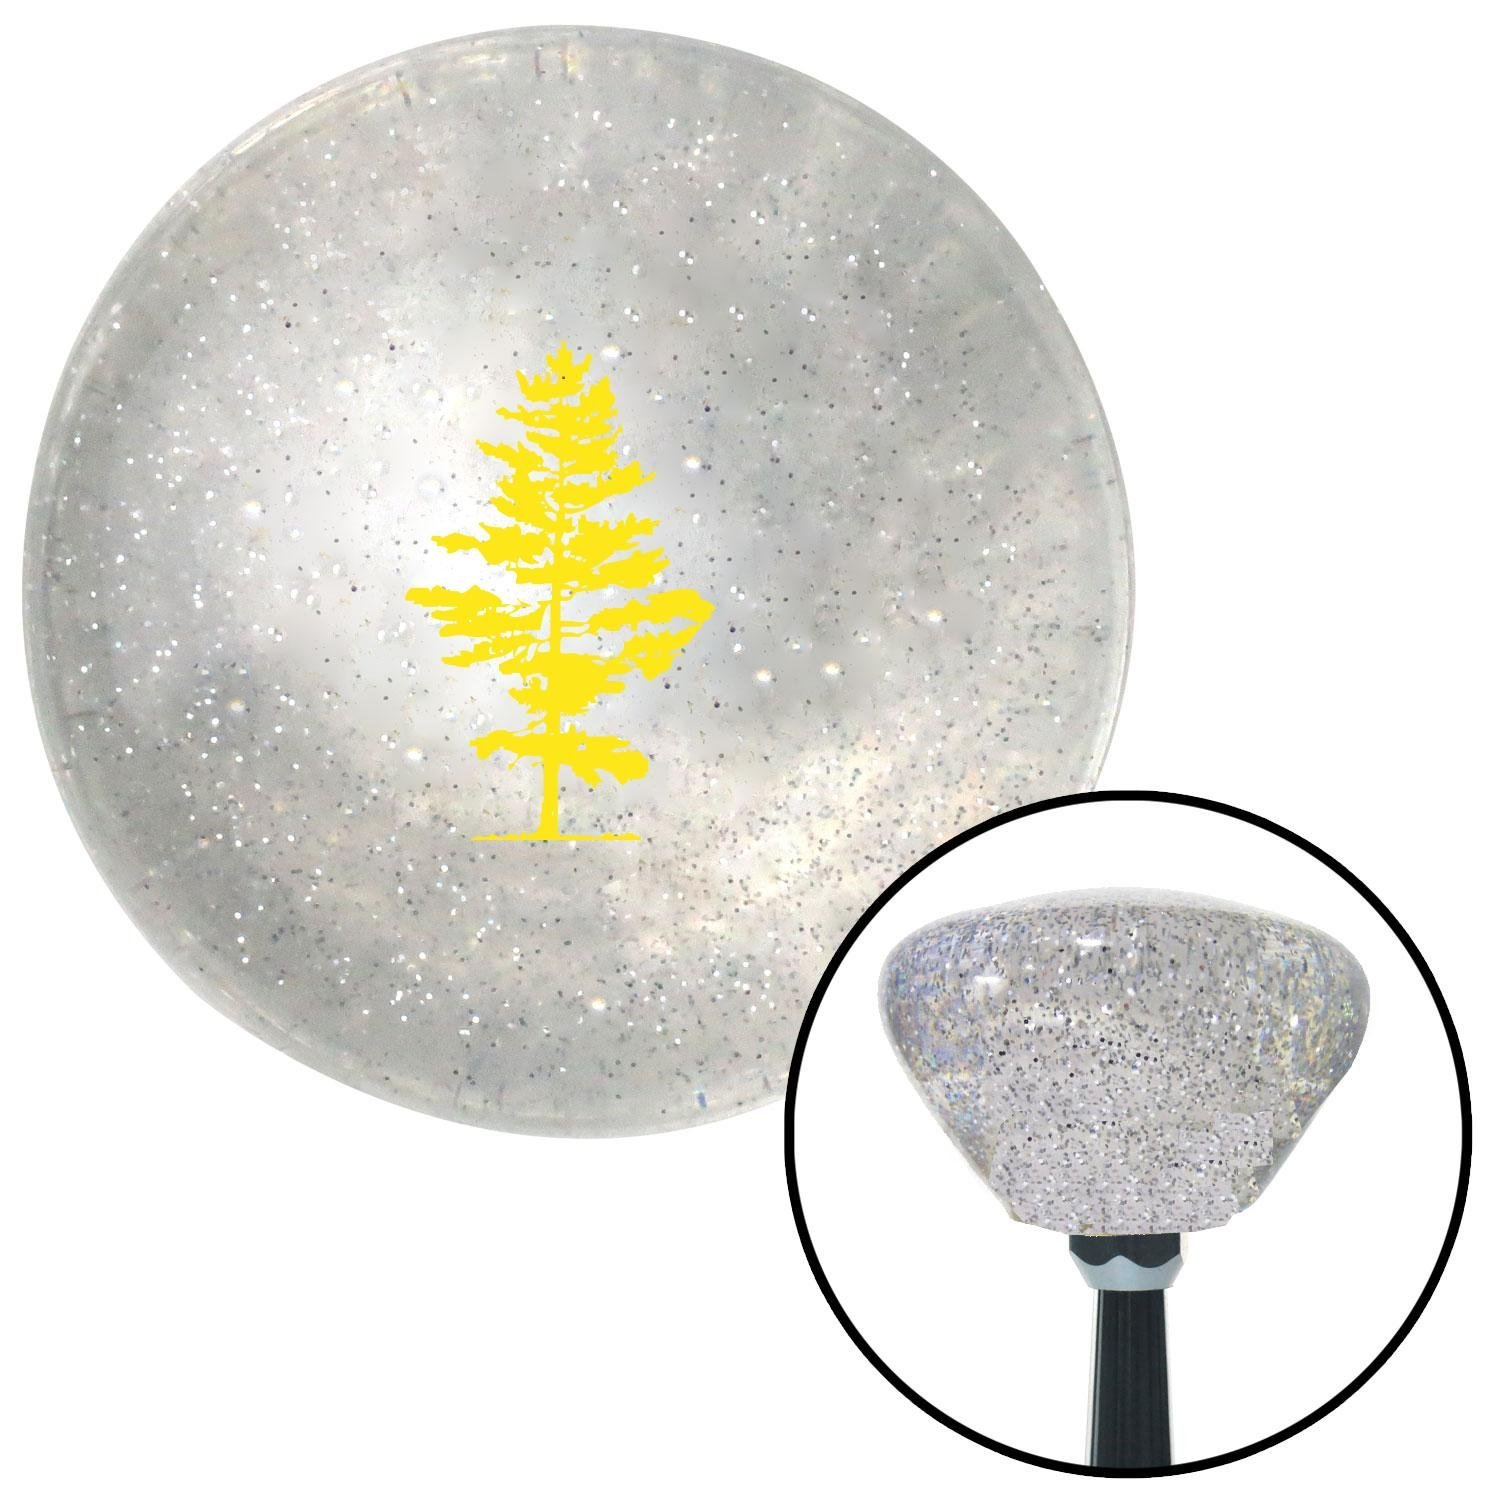 Yellow Evergreen Tree American Shifter 162154 Clear Retro Metal Flake Shift Knob with M16 x 1.5 Insert